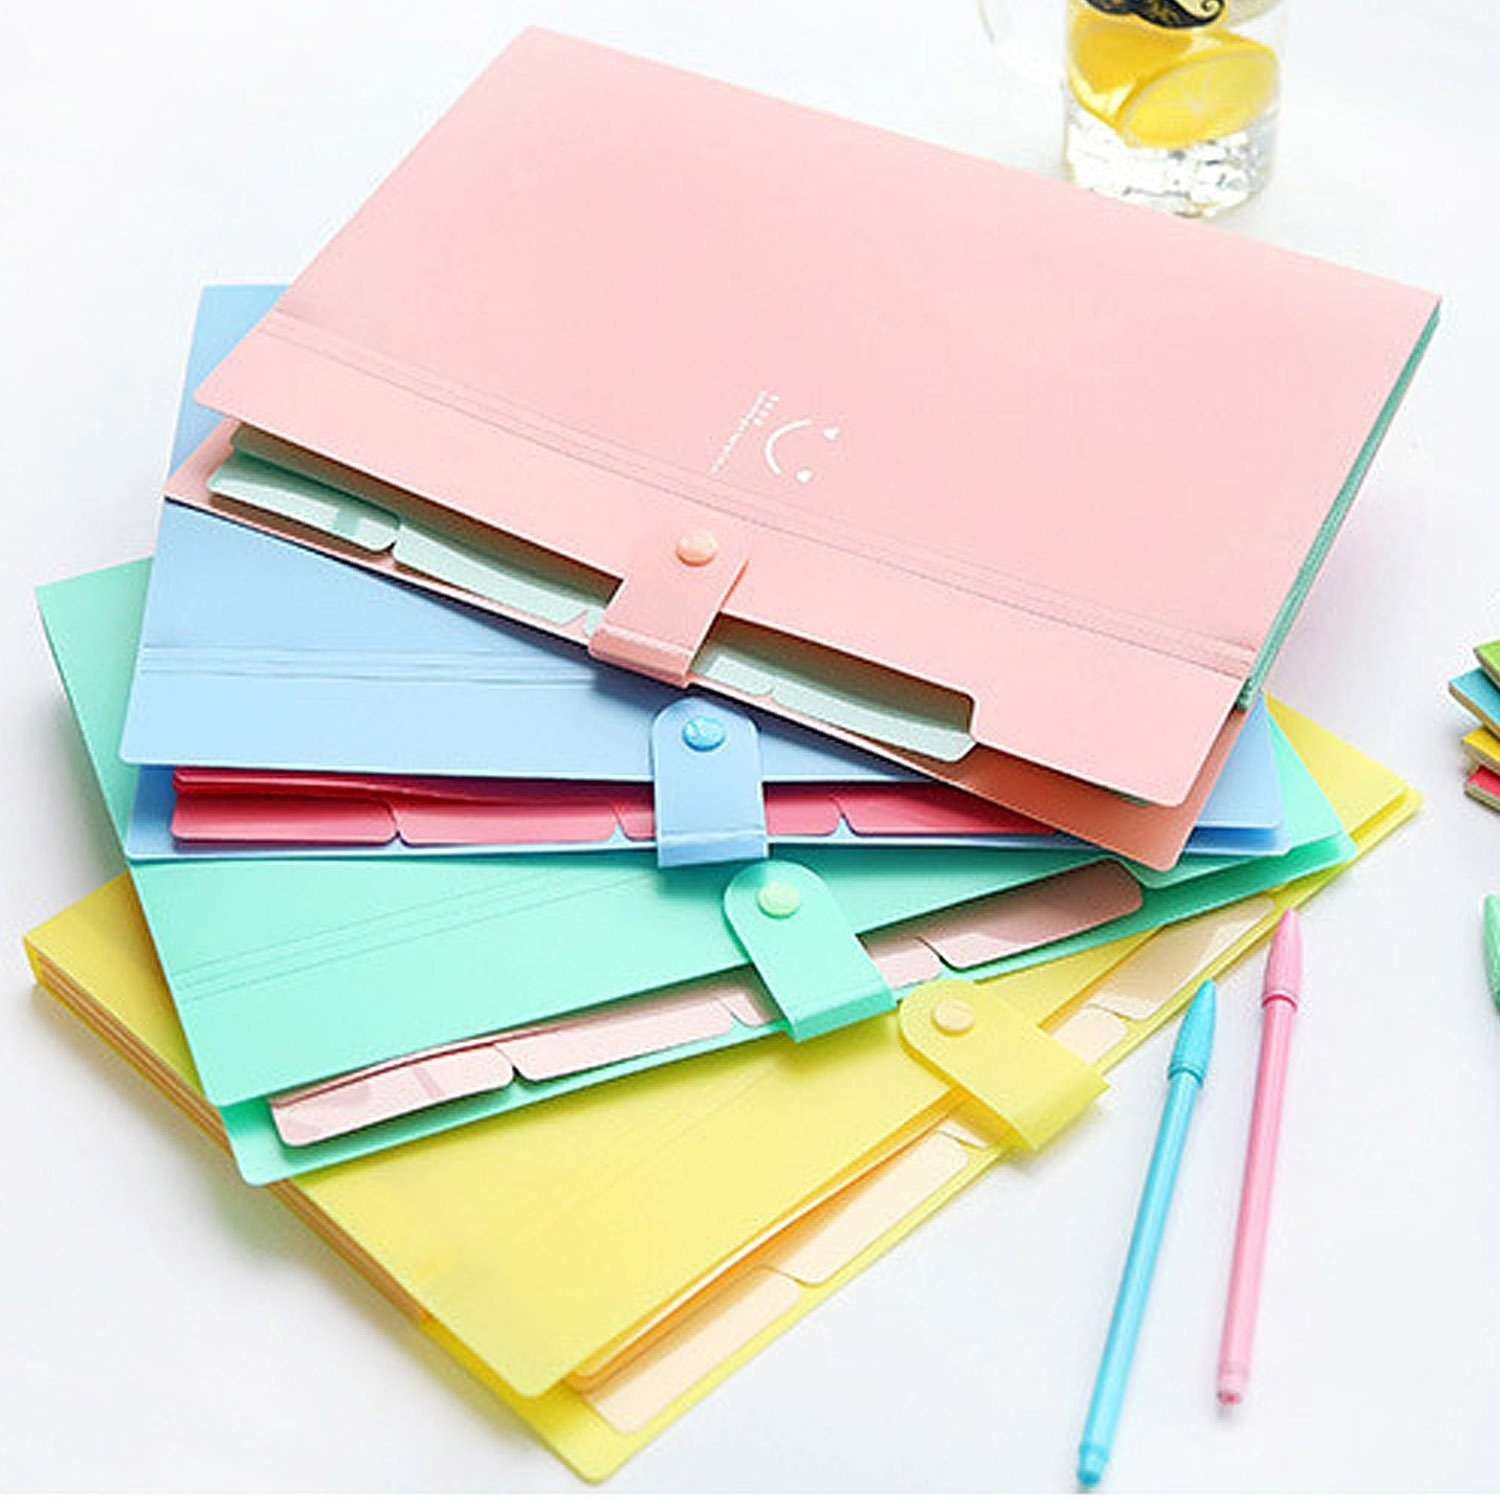 accordion folders in pastel colors